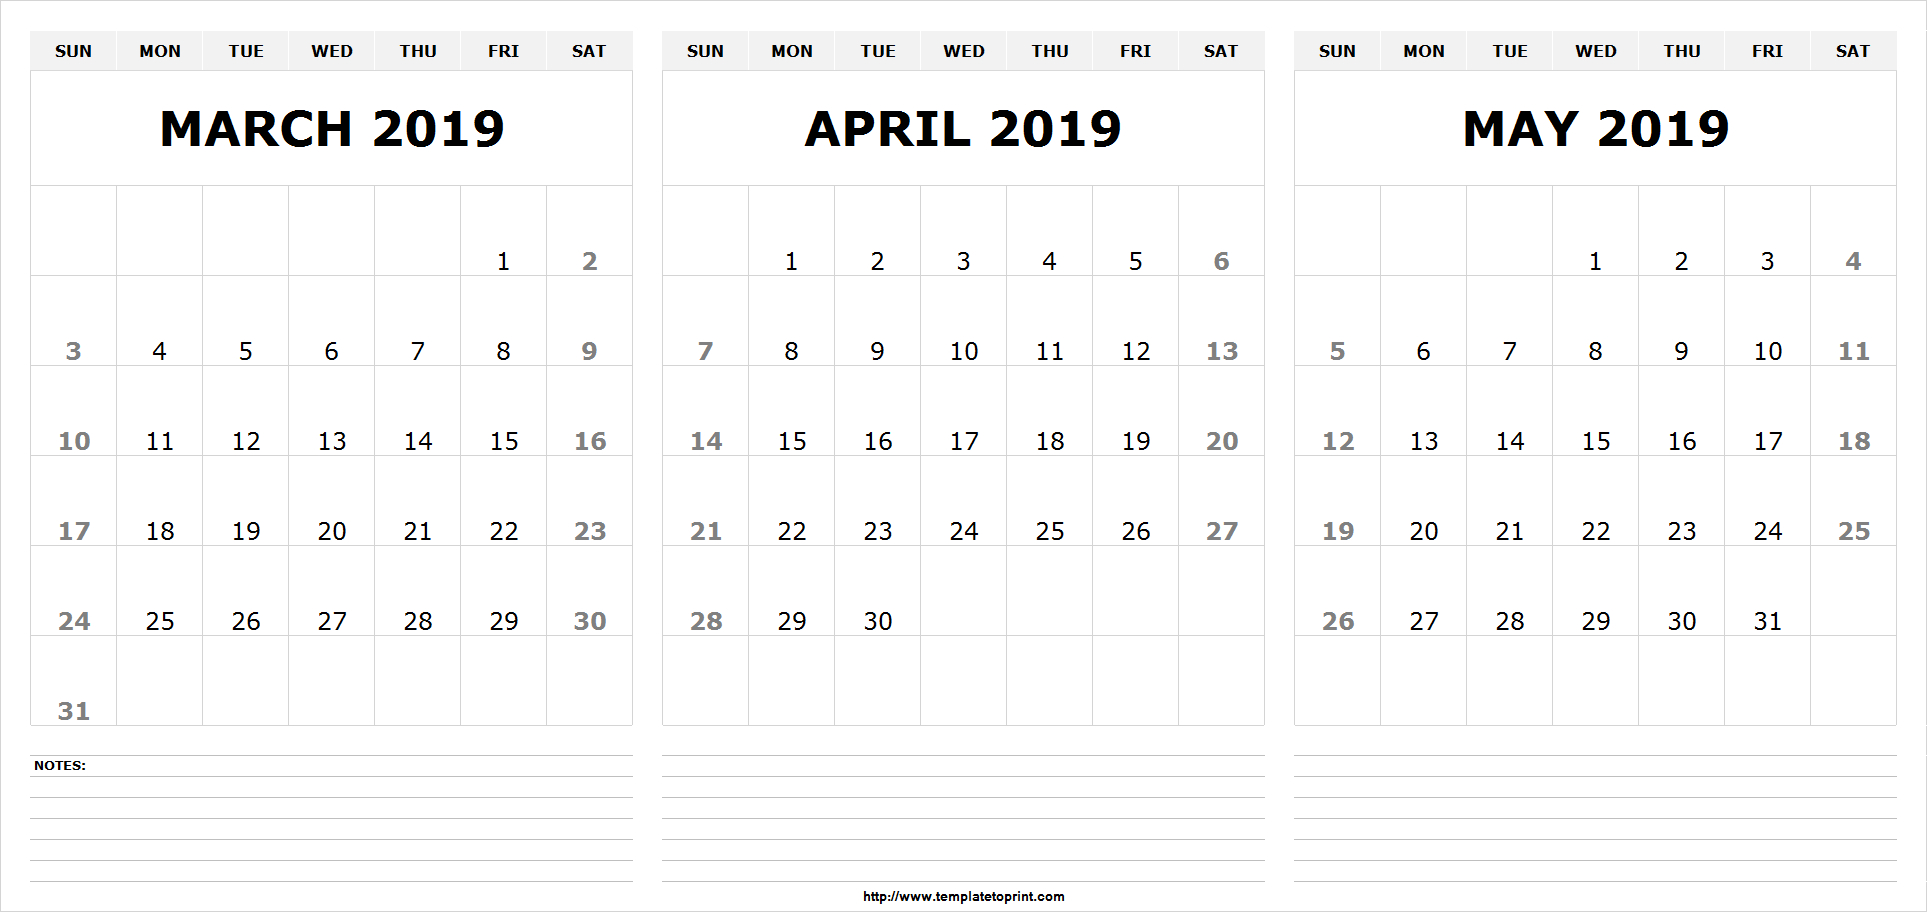 Free Printable March April May 2019 Calendar - Printable Calendar Calendar 2019 April May